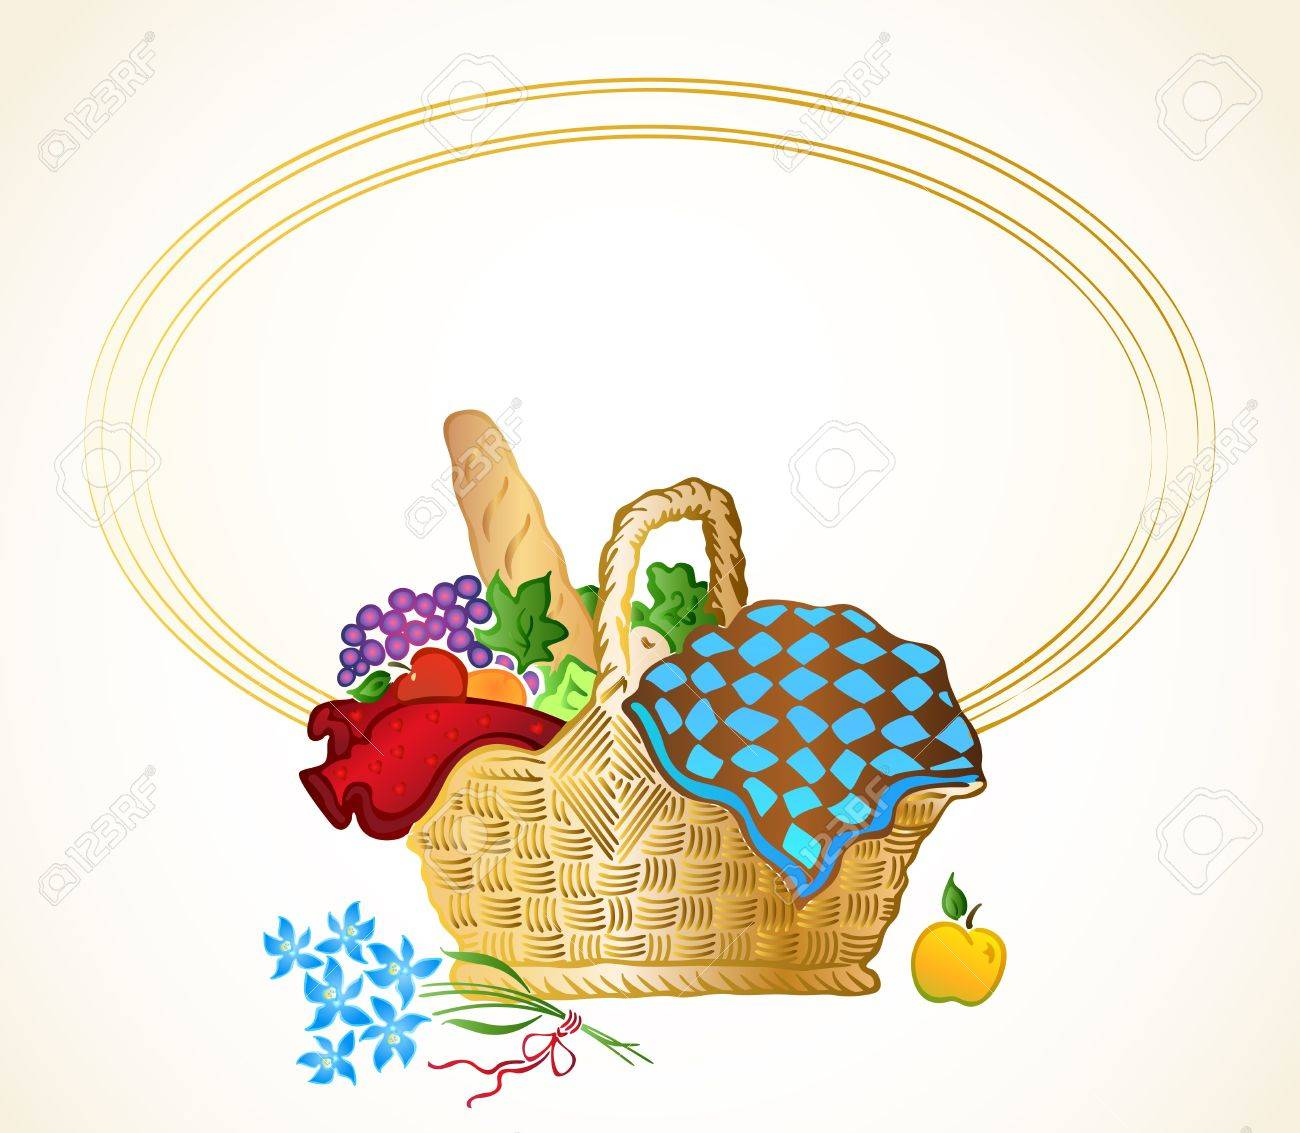 Bunch of food in the basket background - 14313436